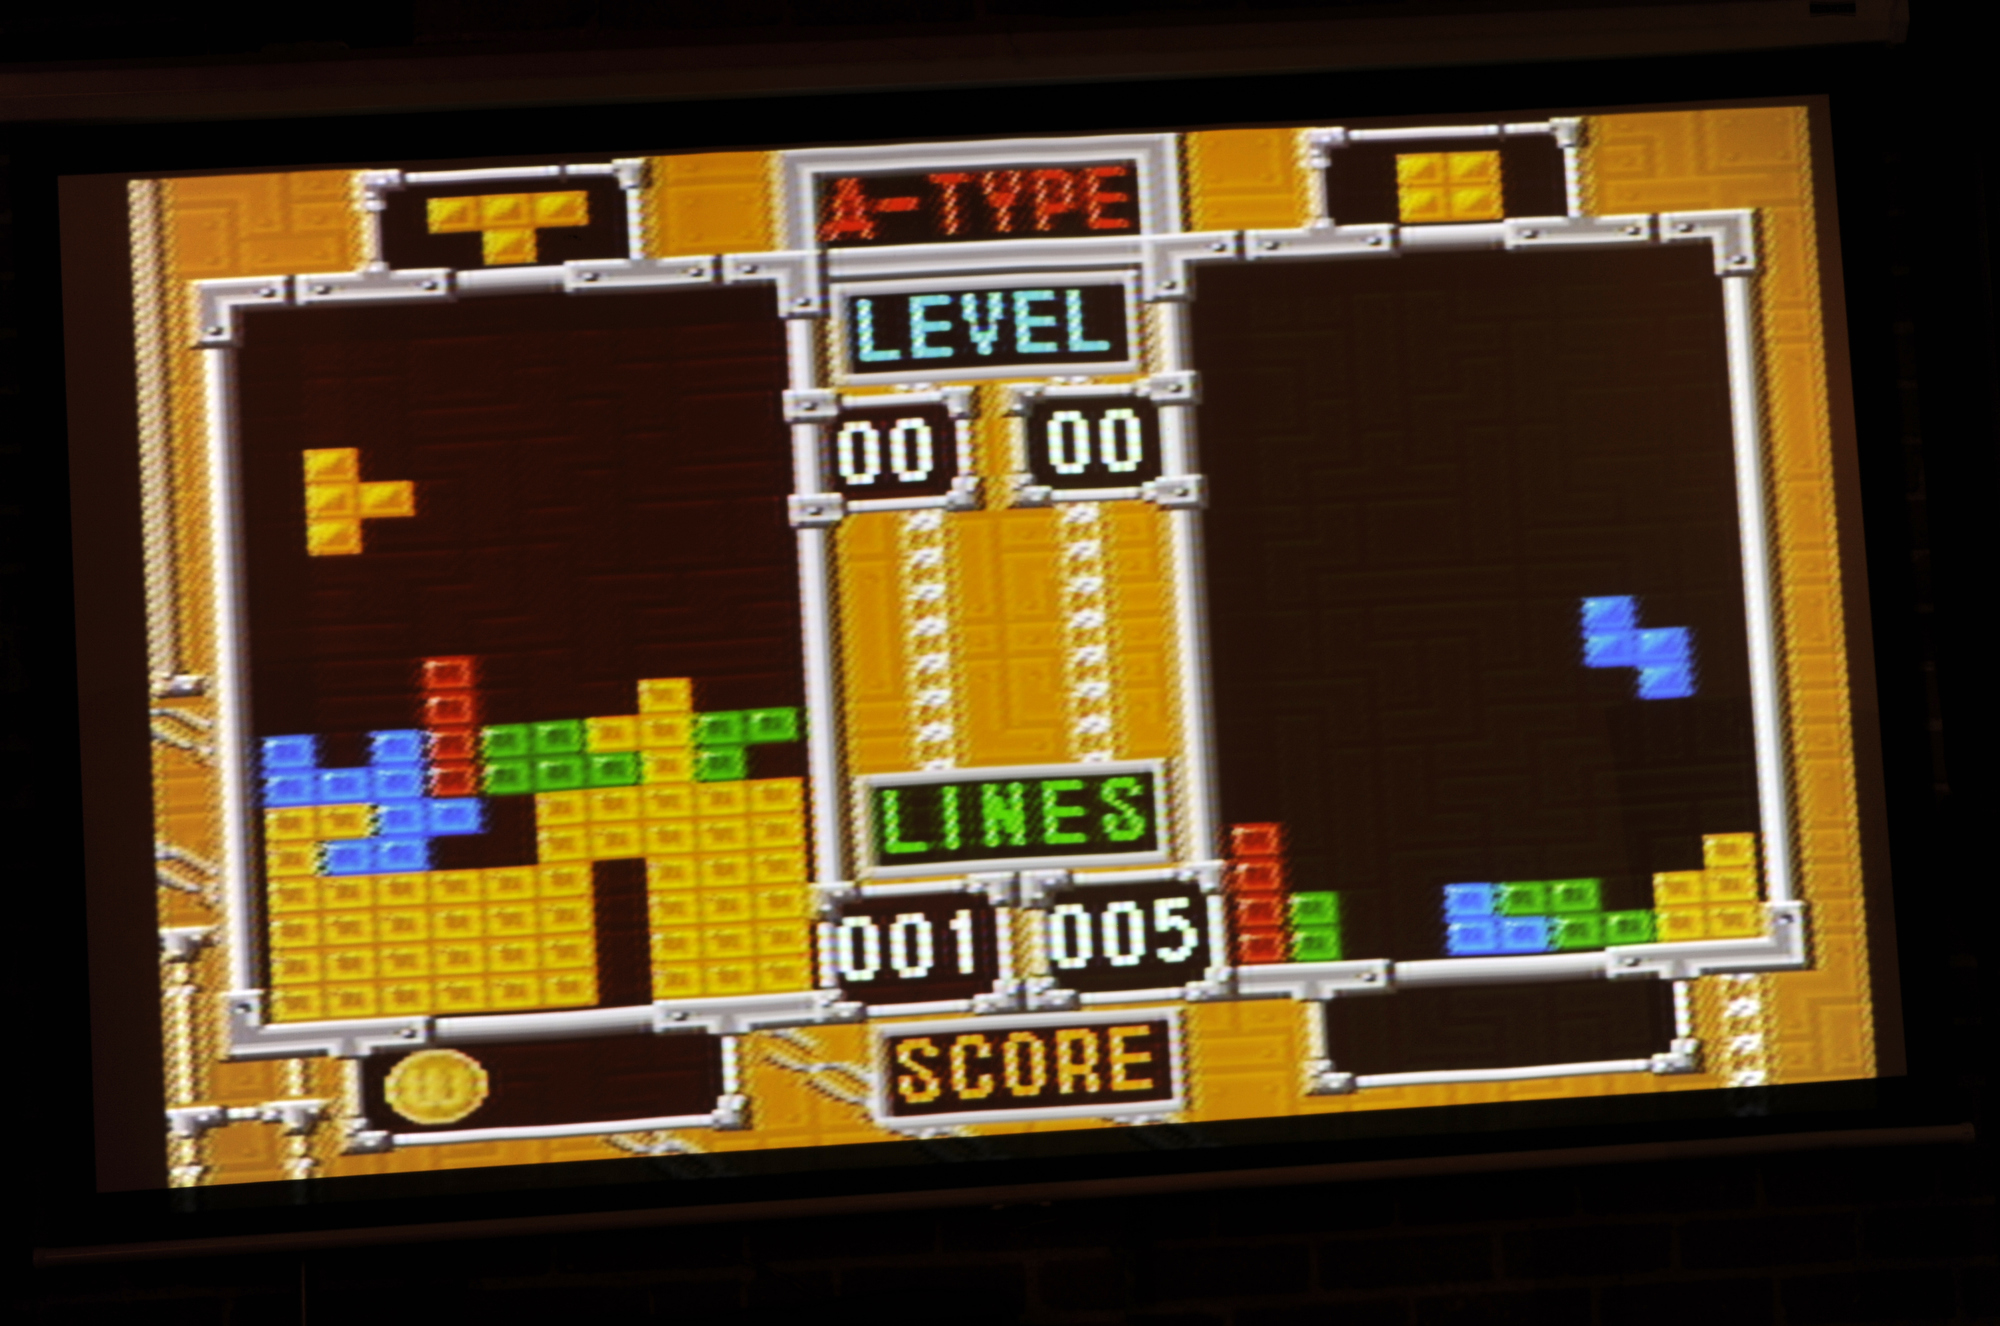 Tetris fanatics meet every month for intense head-to-head competititon in a double-elimination tournament format.